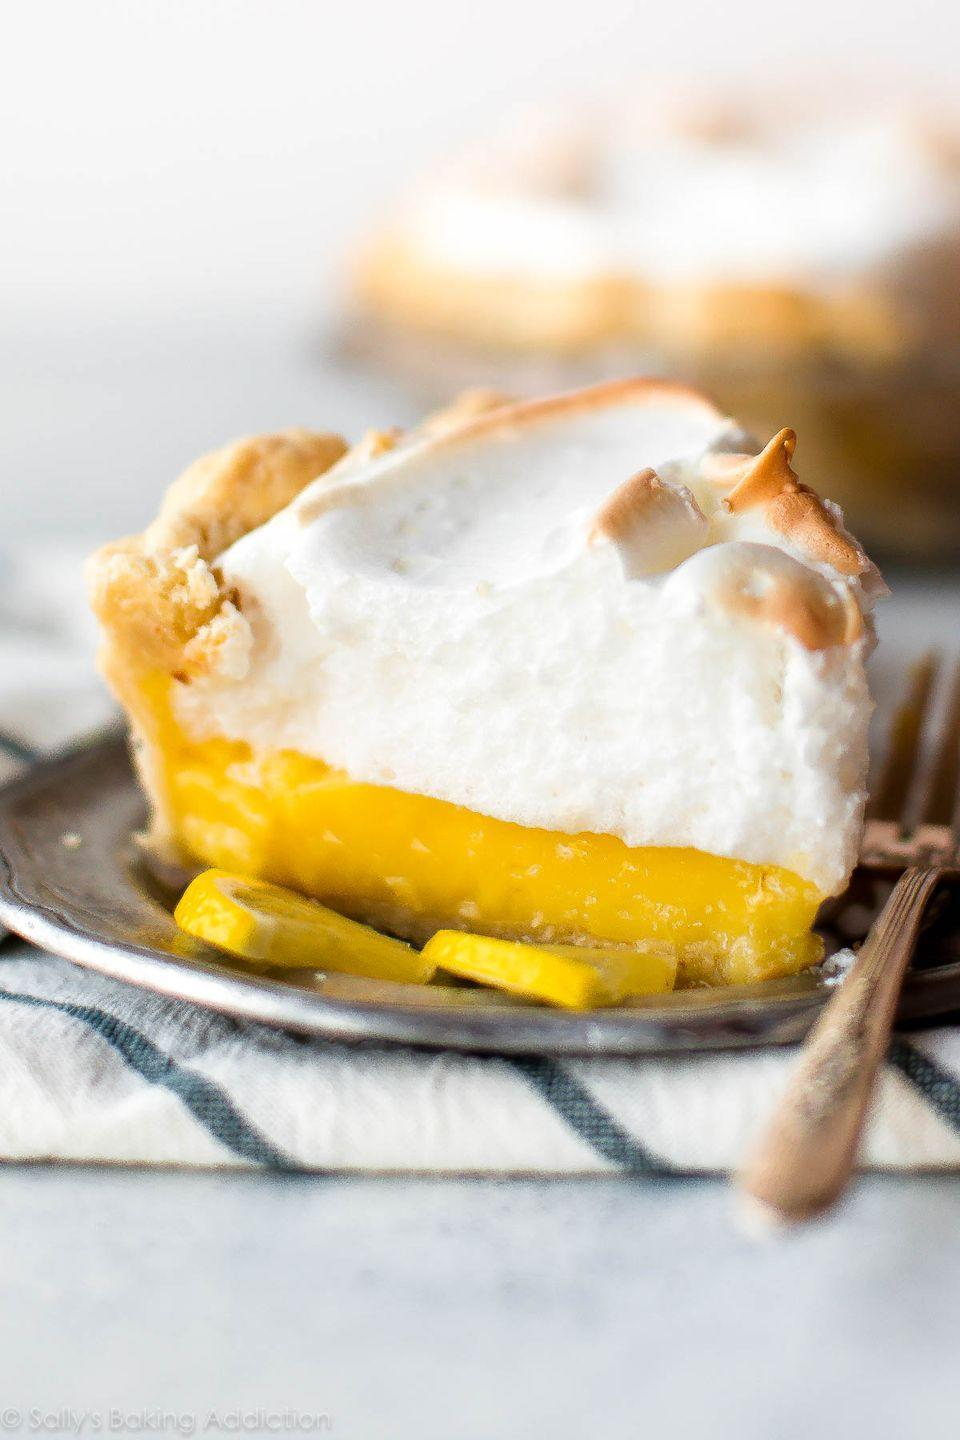 "<p>A classic lemon meringue pie is guaranteed to delight your Easter crew. It's the perfect citrusy bite for spring.</p><p><strong>Get the recipe at <a href=""https://sallysbakingaddiction.com/lemon-meringue-pie/"" rel=""nofollow noopener"" target=""_blank"" data-ylk=""slk:Sally's Baking Addiction"" class=""link rapid-noclick-resp"">Sally's Baking Addiction</a>.</strong></p><p><strong><a class=""link rapid-noclick-resp"" href=""https://go.redirectingat.com?id=74968X1596630&url=https%3A%2F%2Fwww.walmart.com%2Fbrowse%2Fhome%2Fpie-dishes-tart-pans%2F4044_623679_8455465_4674050%3Ffacet%3Dbrand%253AThe%2BPioneer%2BWoman&sref=https%3A%2F%2Fwww.thepioneerwoman.com%2Ffood-cooking%2Fmeals-menus%2Fg35408493%2Feaster-desserts%2F"" rel=""nofollow noopener"" target=""_blank"" data-ylk=""slk:SHOP PIE PLATES"">SHOP PIE PLATES</a><br></strong></p>"